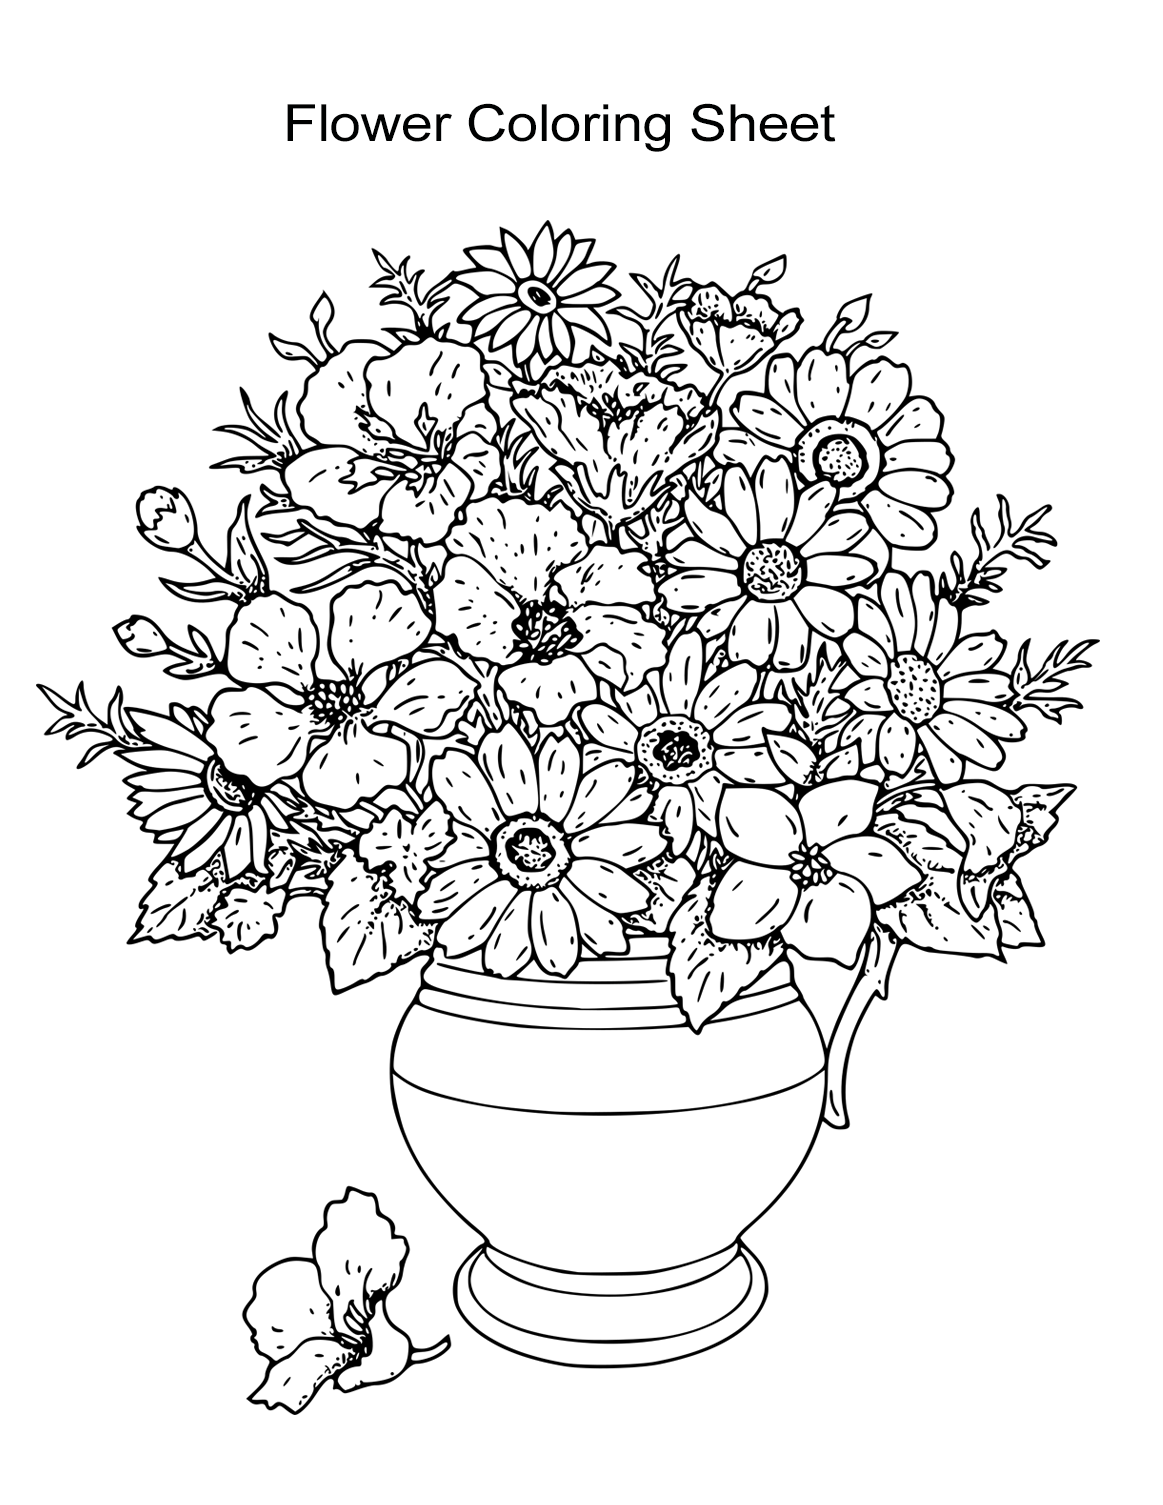 flowers coloring page summer flowers coloring pages 10 free fun printable page coloring flowers